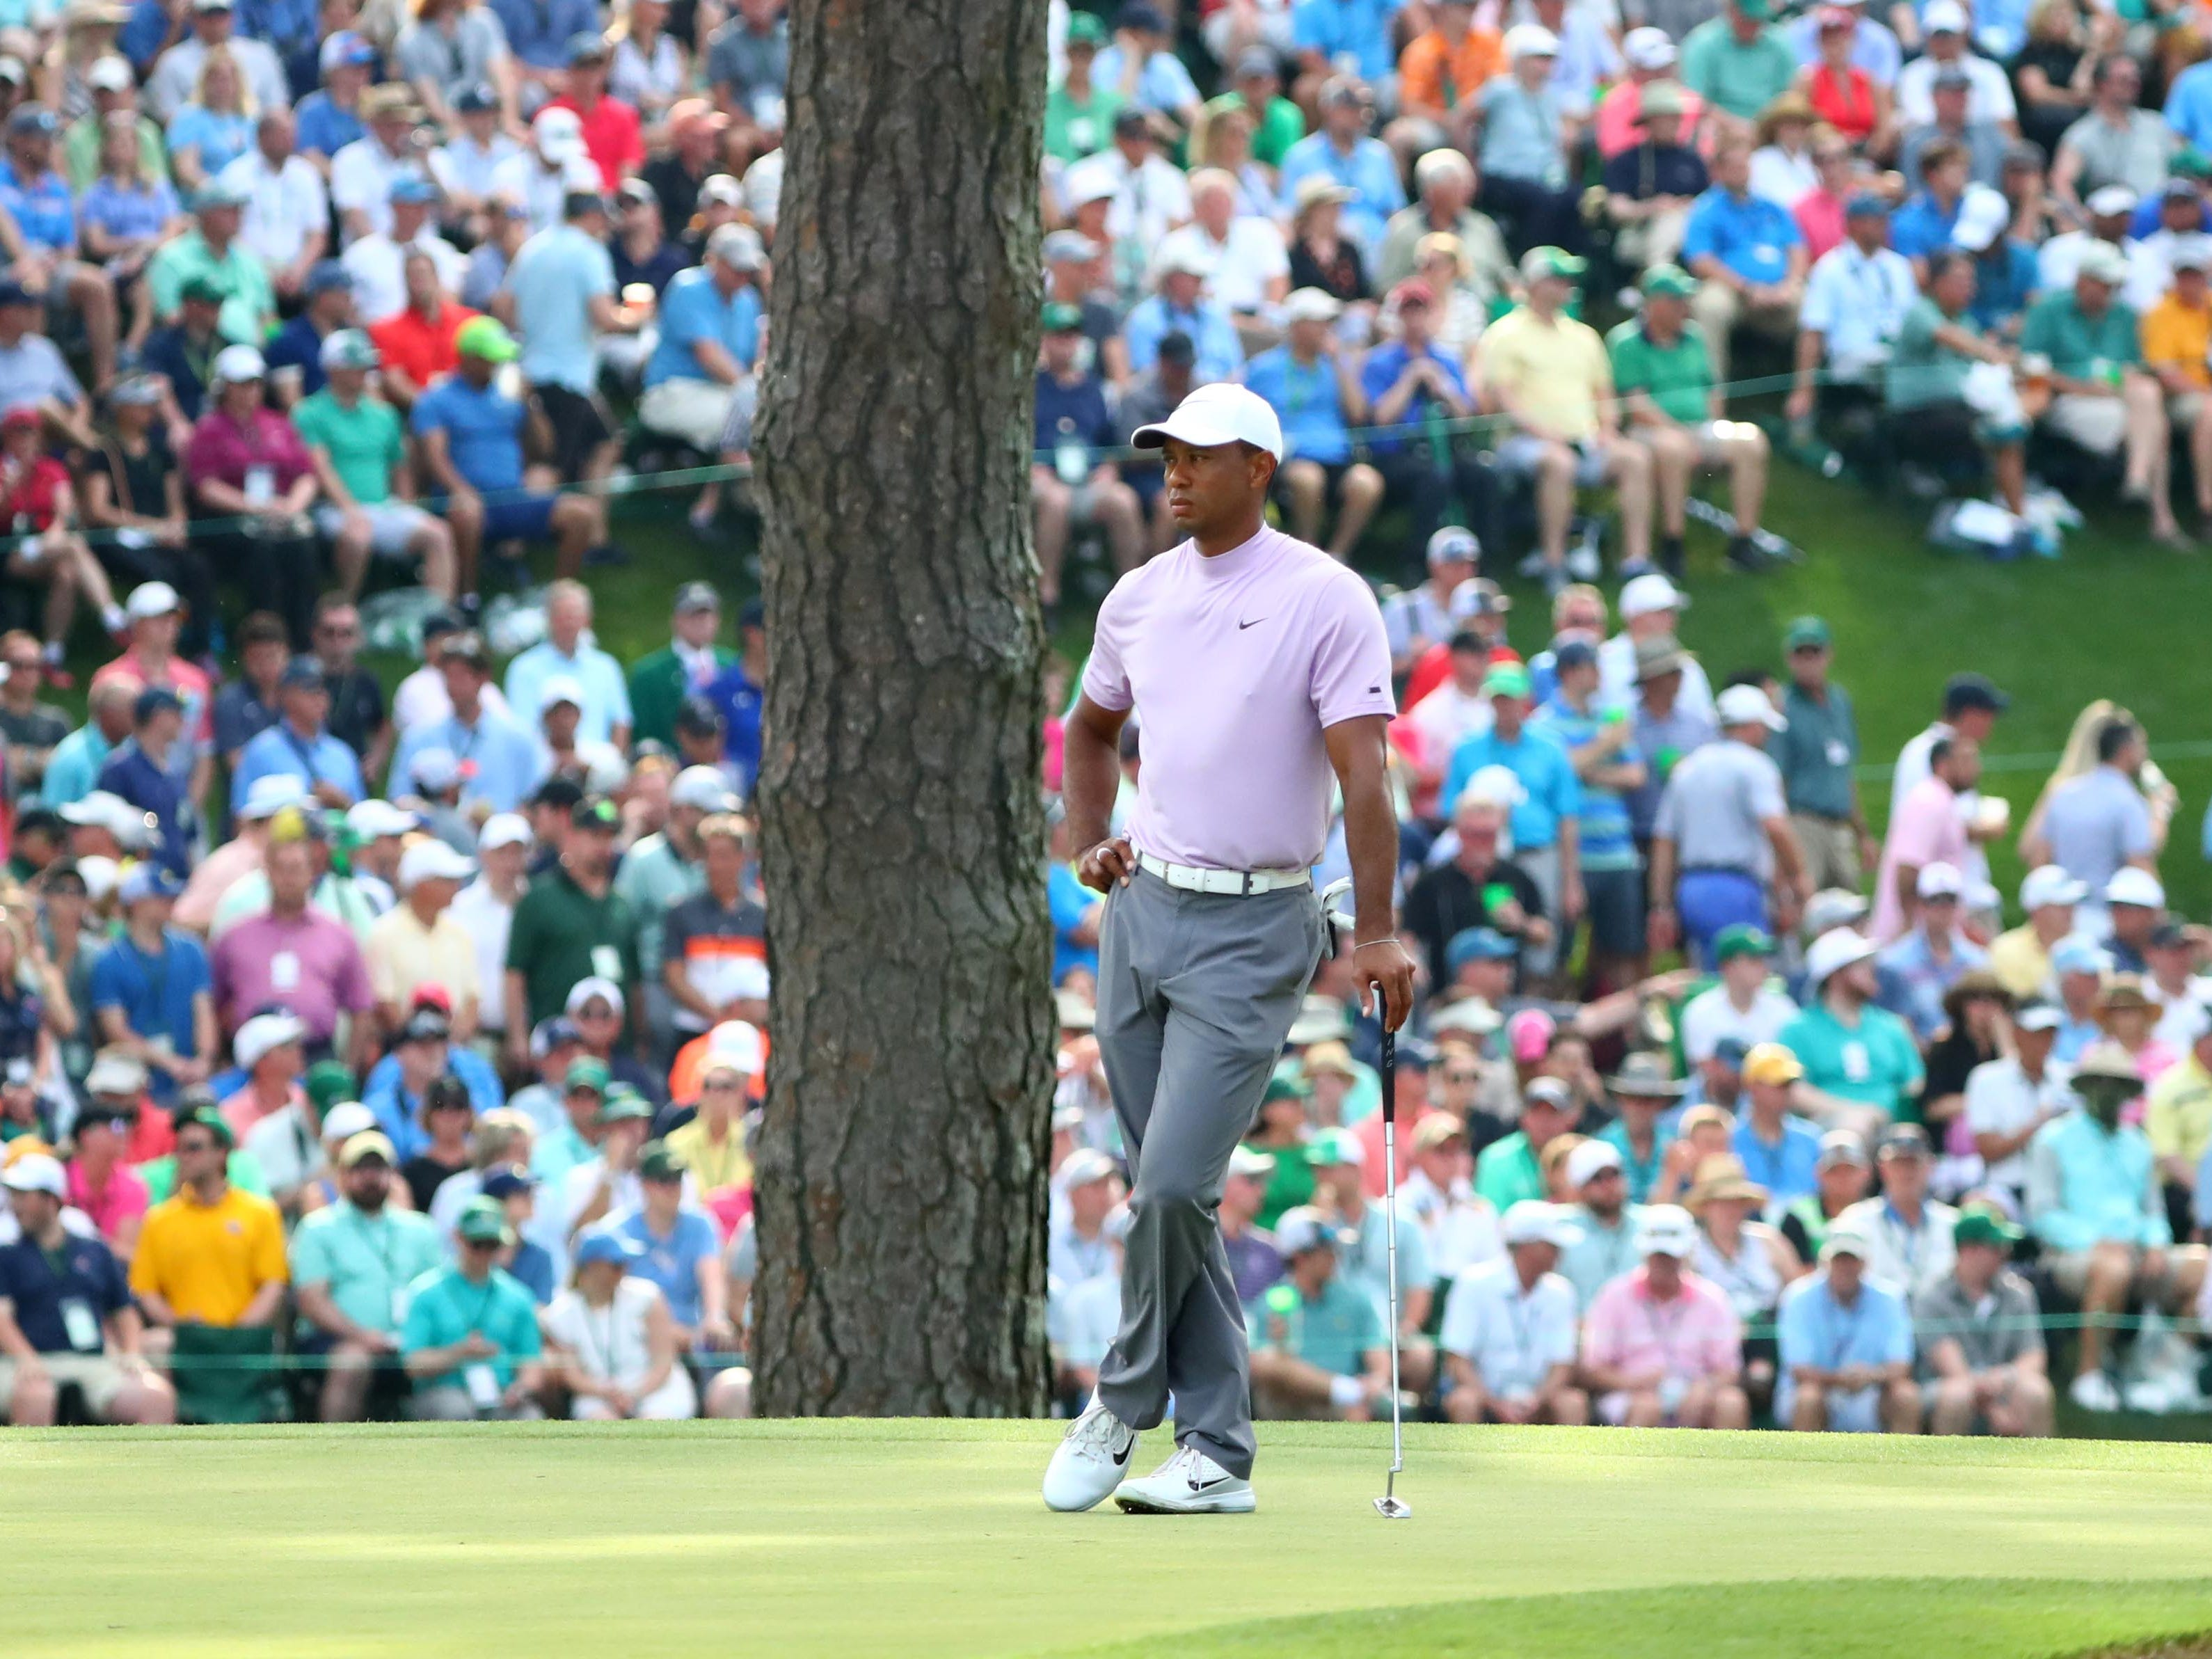 Tiger Woods waits to putt on the 15th green during the third round.